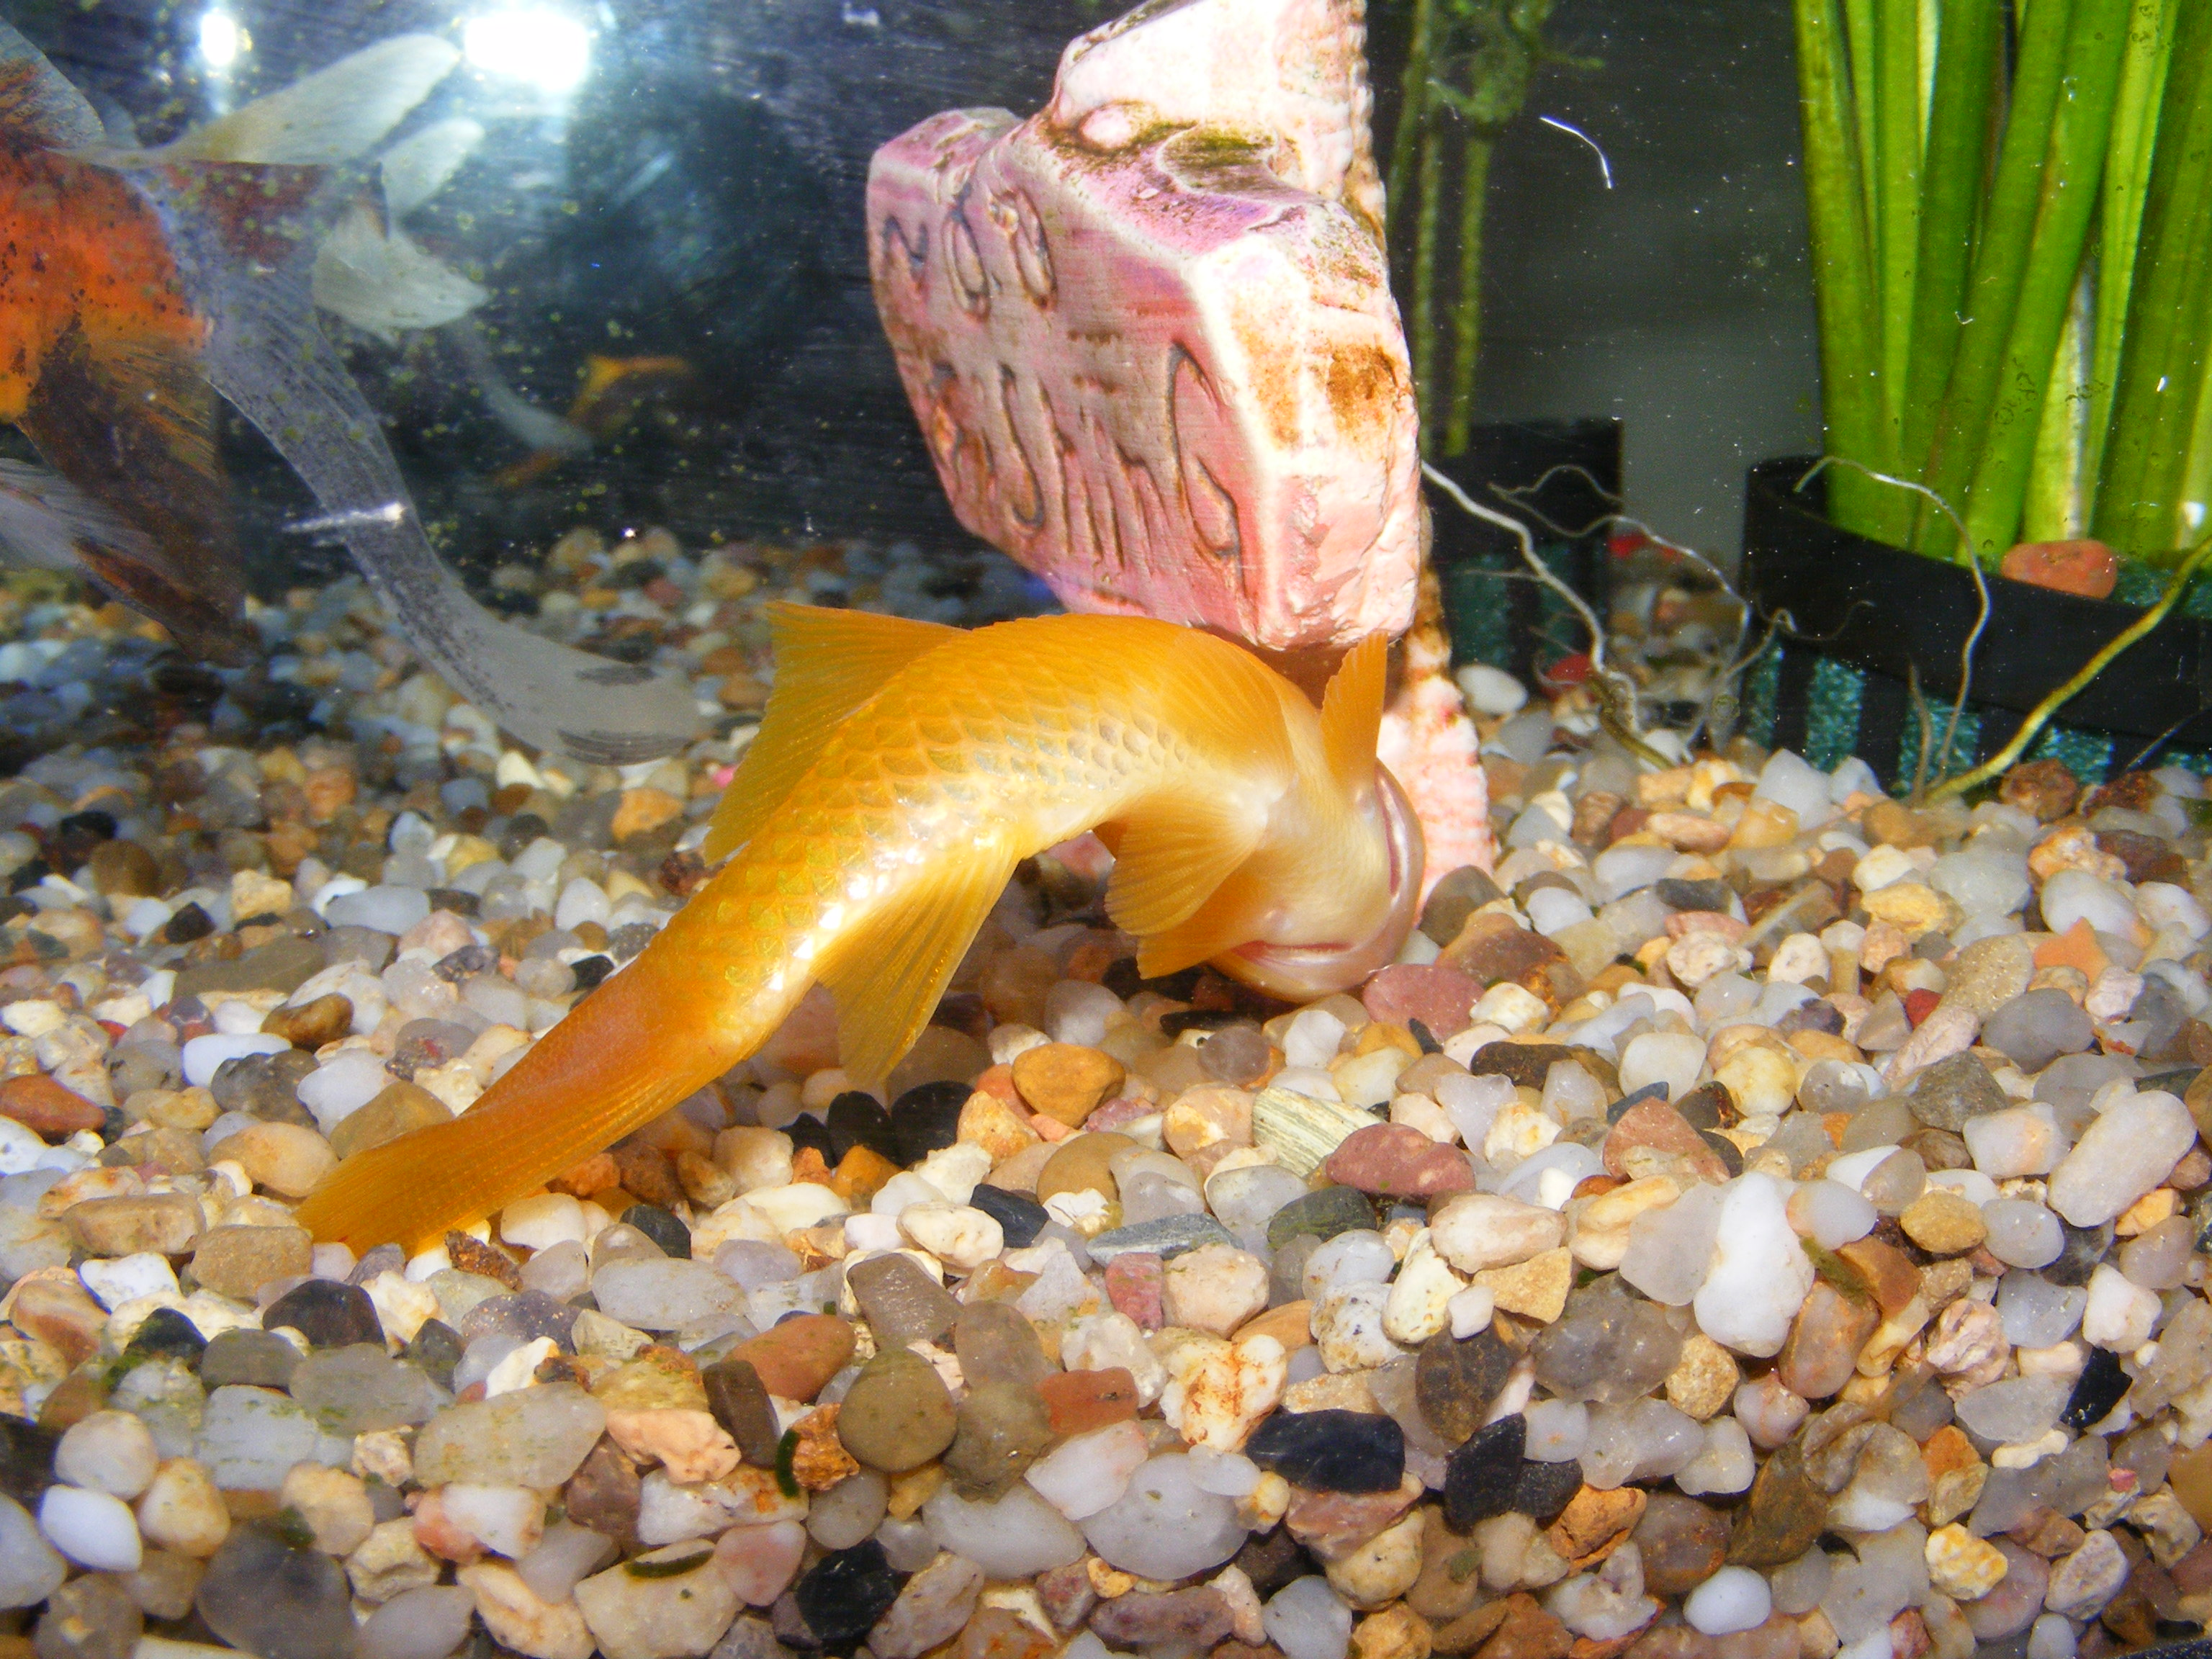 Goldfish curled over – nitrate poisoning or bacterial infection